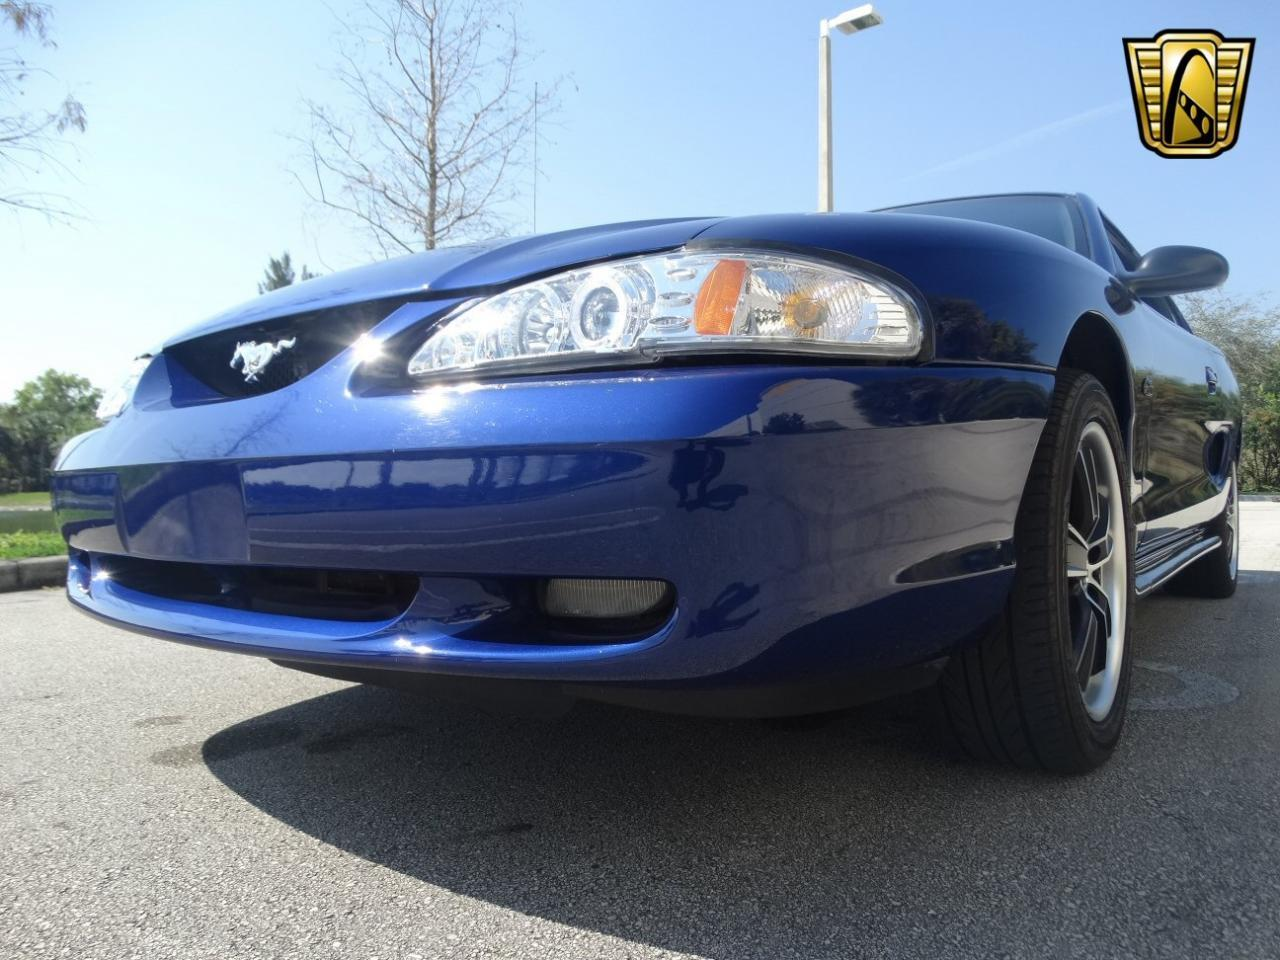 Large Picture of 1996 Ford Mustang located in Coral Springs Florida - $9,995.00 - KJ79